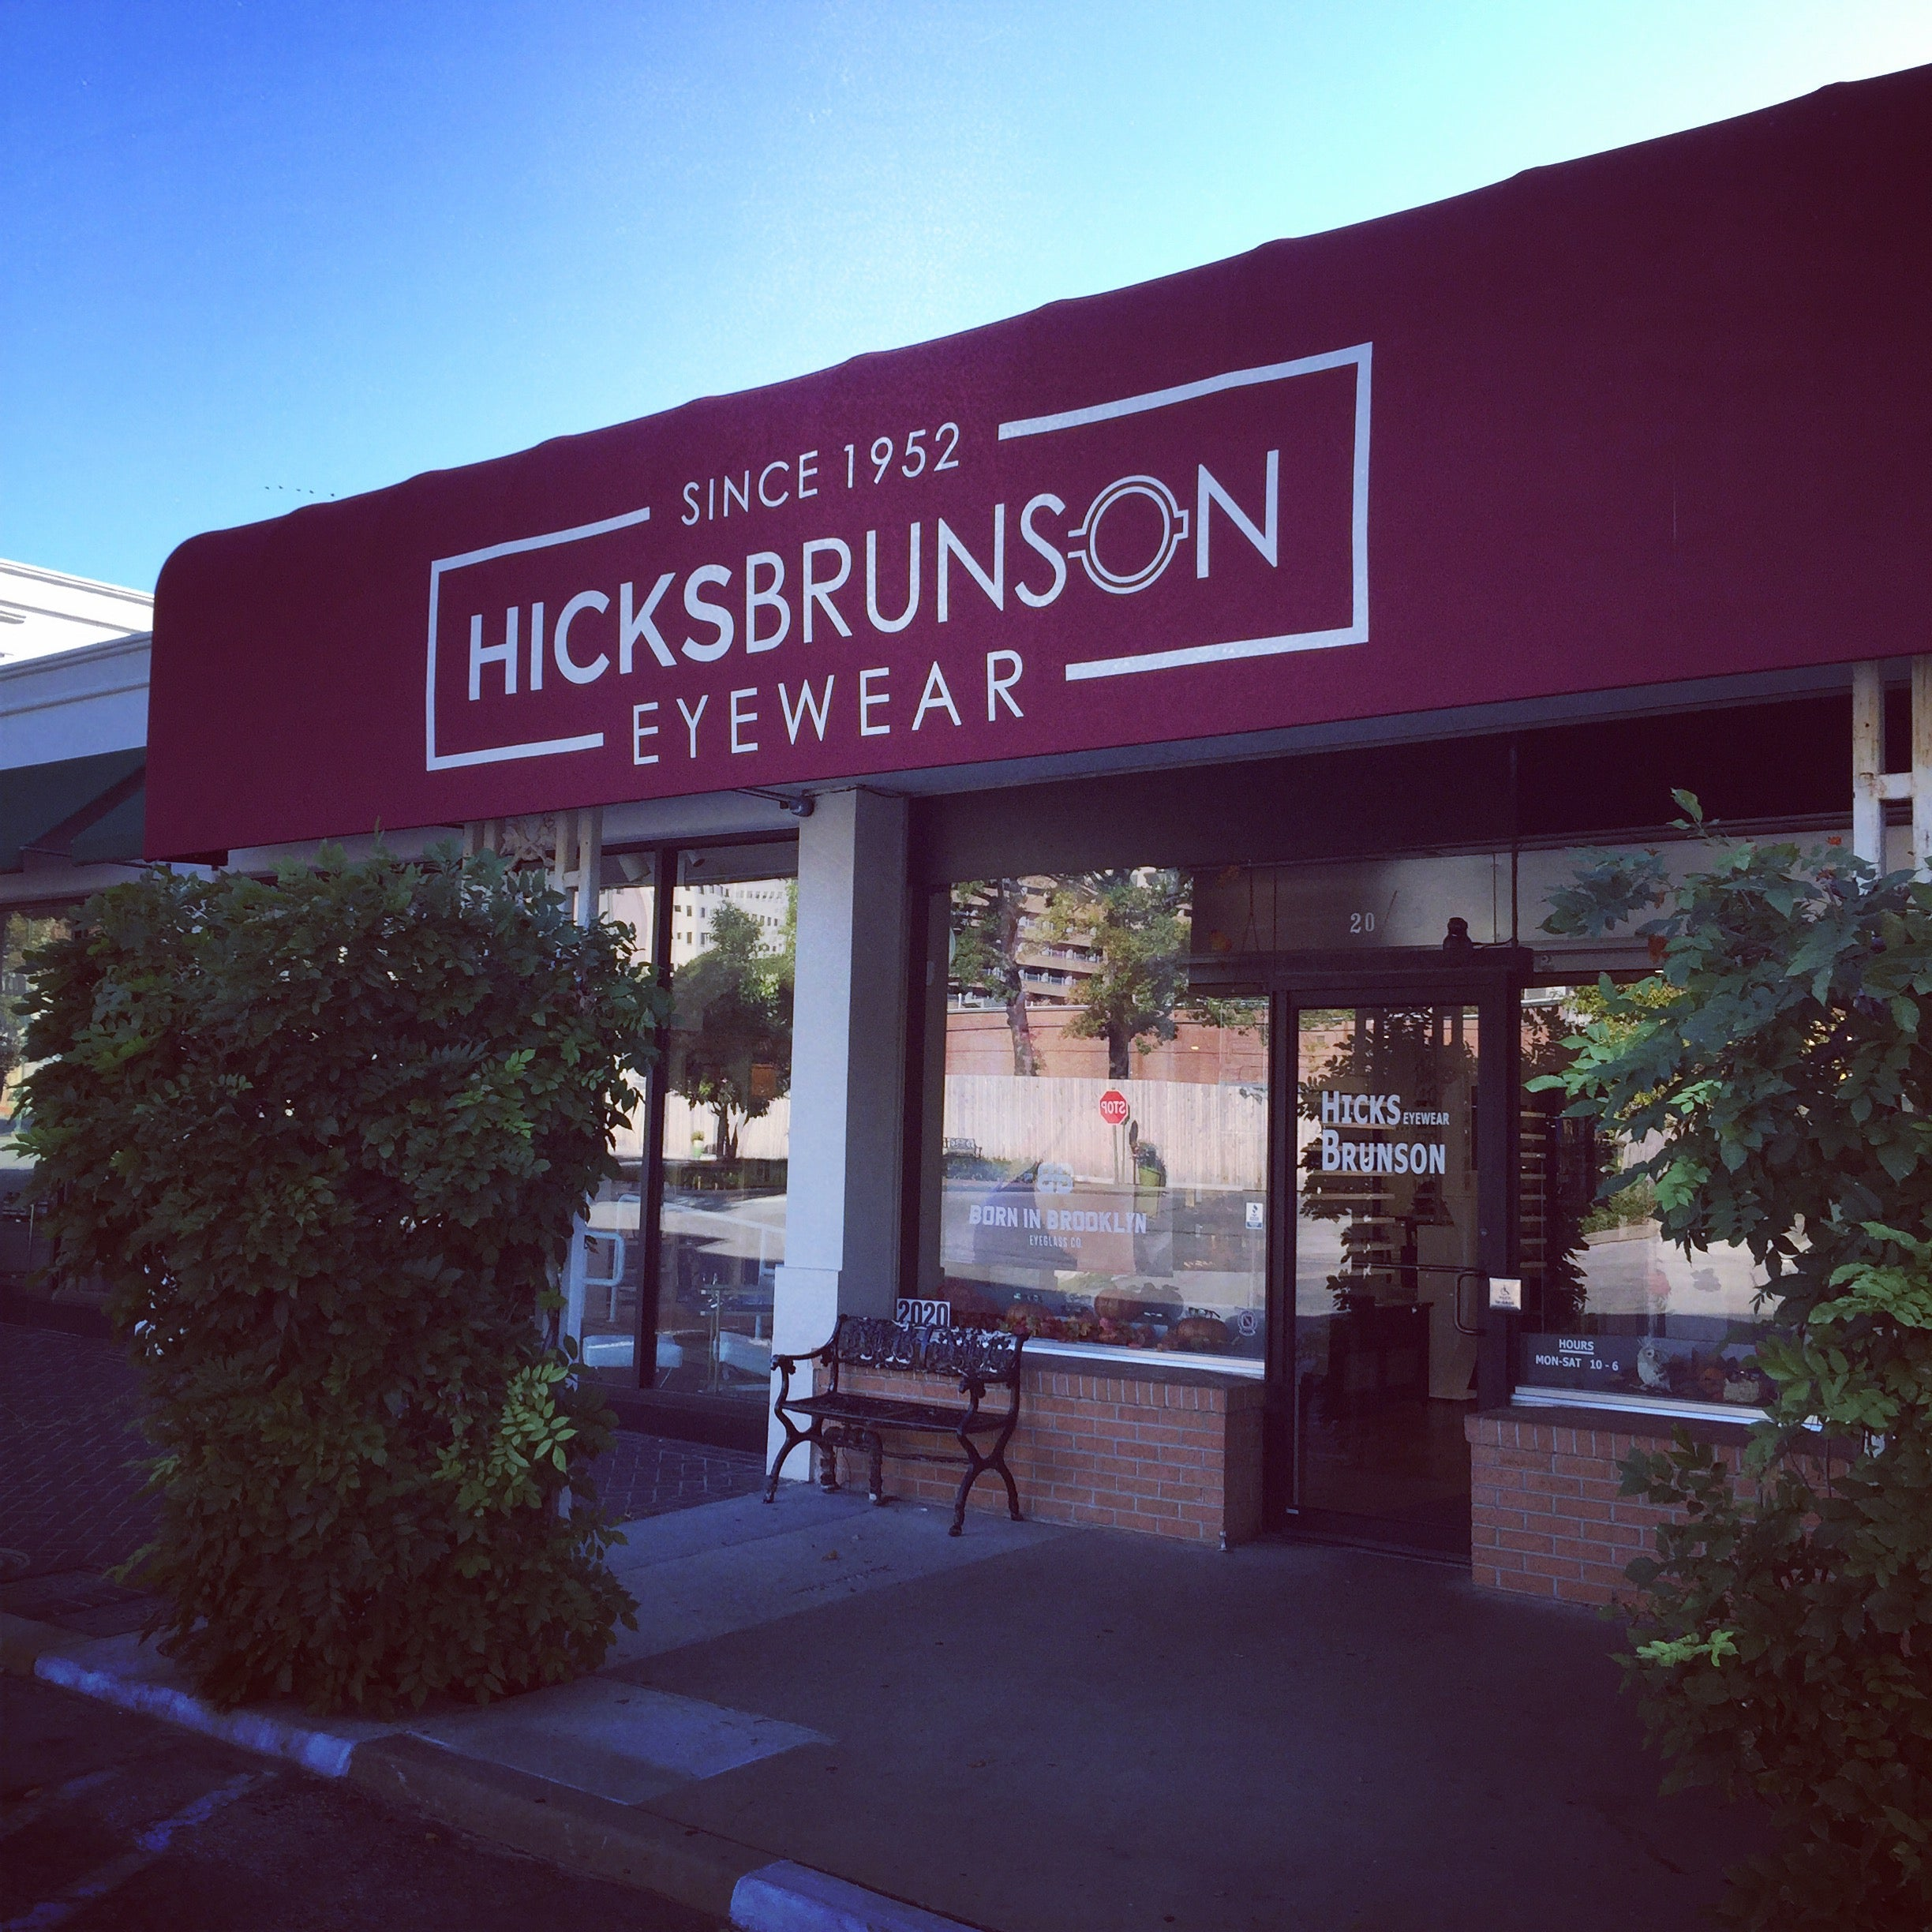 Hicks Brunson Eyewear - Eyewear Boutique - Tulsa - Oklahoma - Utica Square - Since 1952